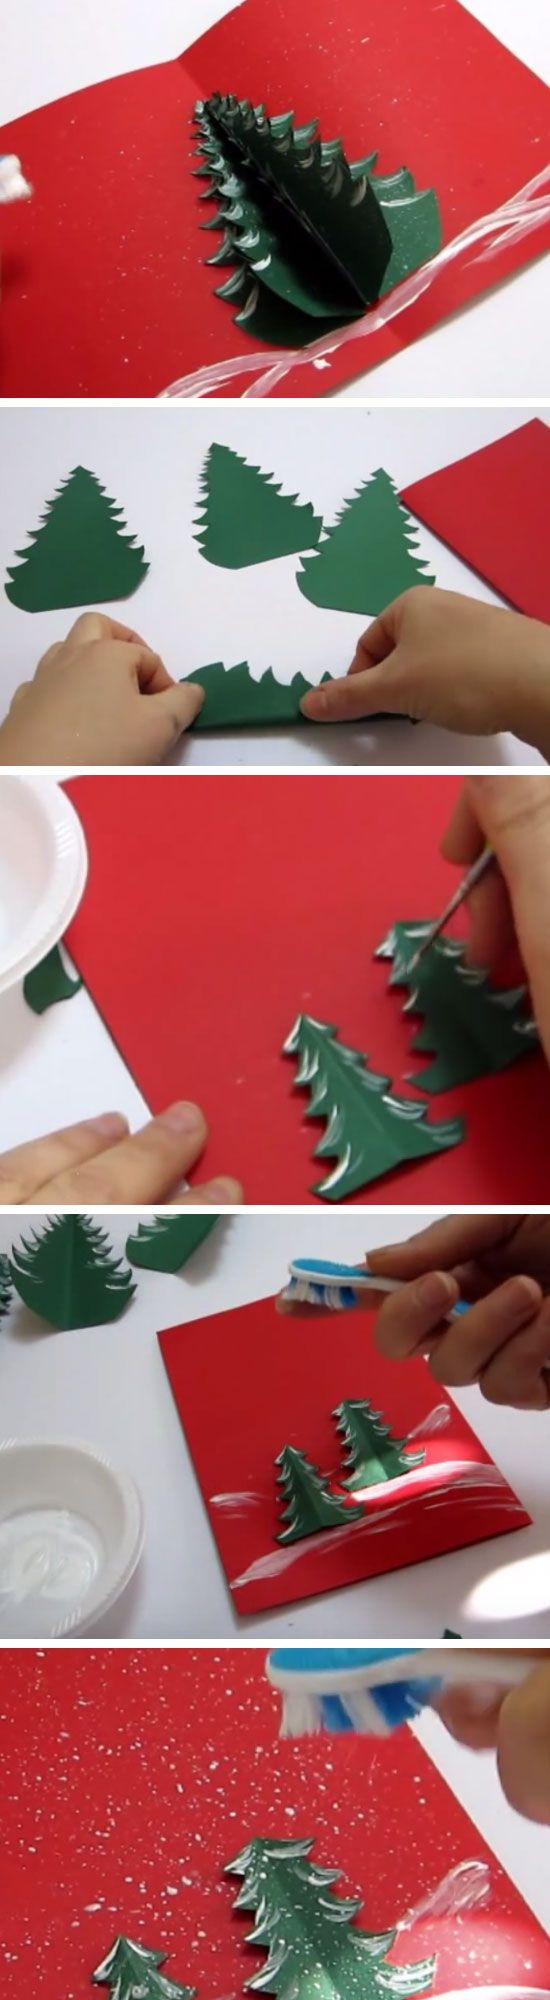 Paper Craft Christmas Card Ideas Part - 22: Christmas Tree Pop Up Card | Handmade Pop Up Christmas Cards For Kids To  Make